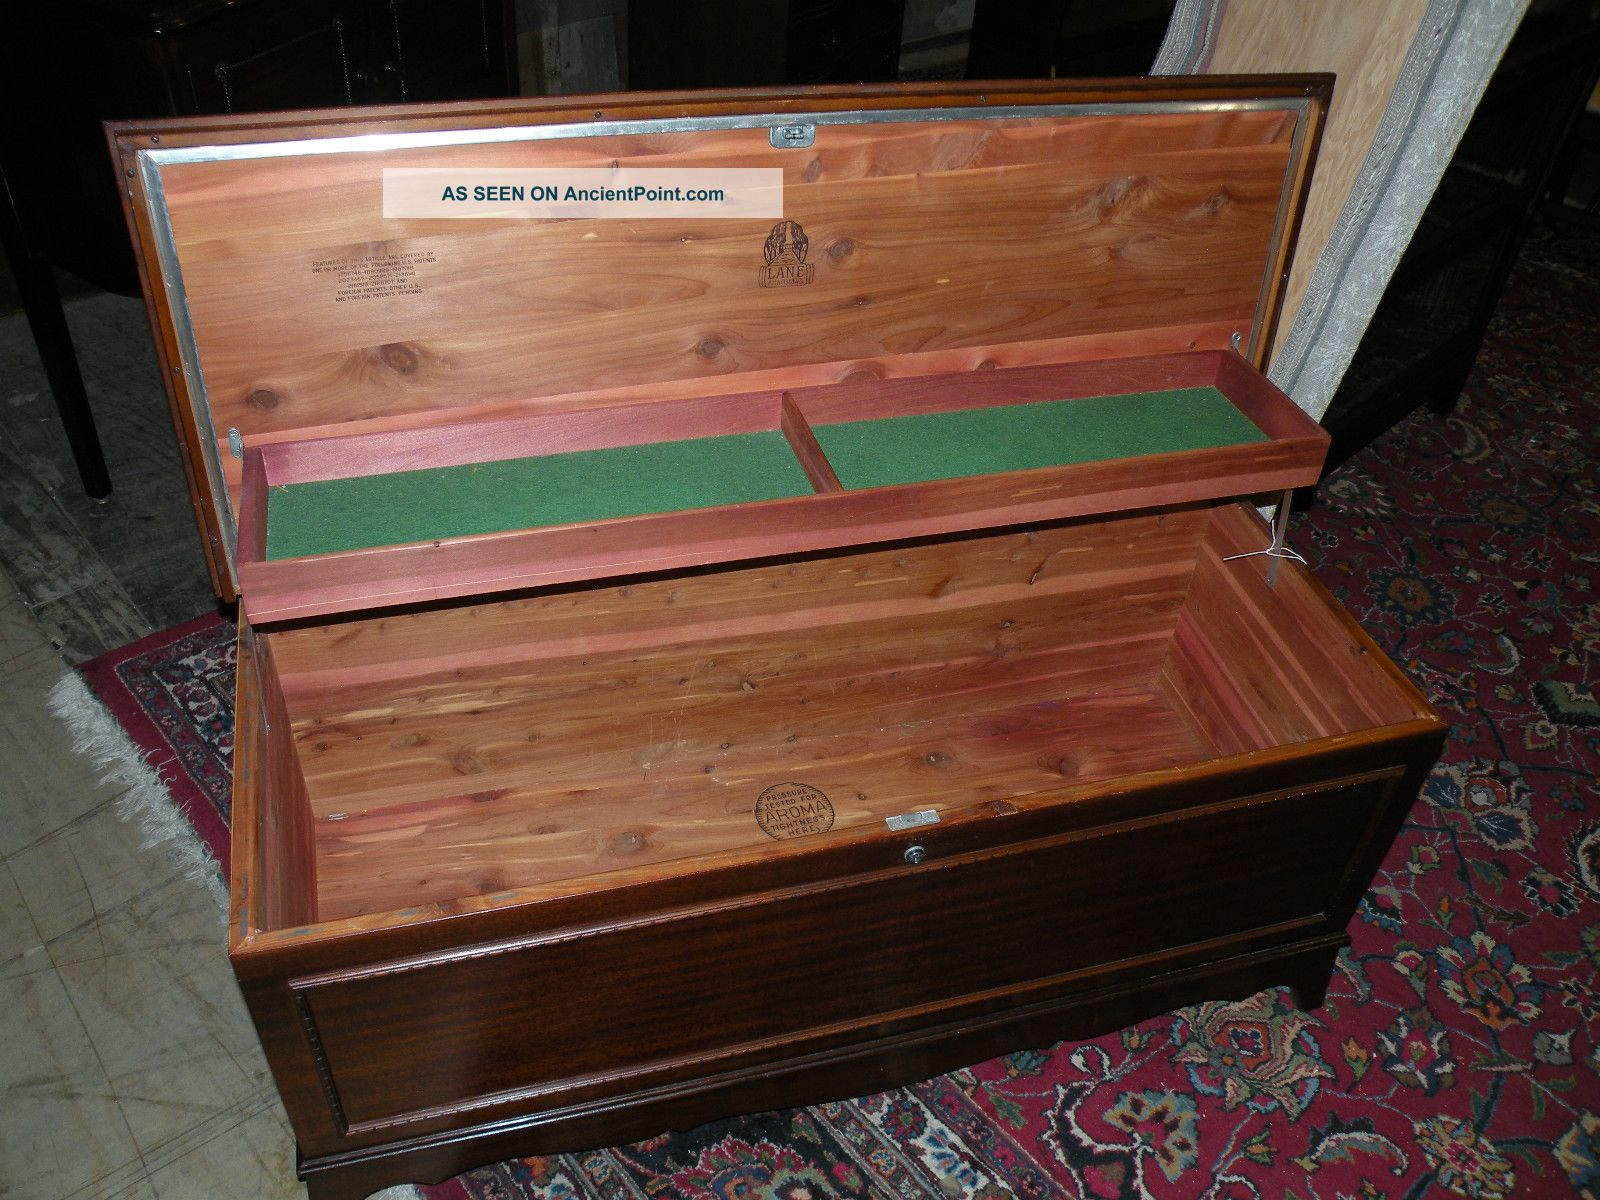 Magnificent Blanket Storage Trunks Chests 1600 x 1200 · 317 kB · jpeg